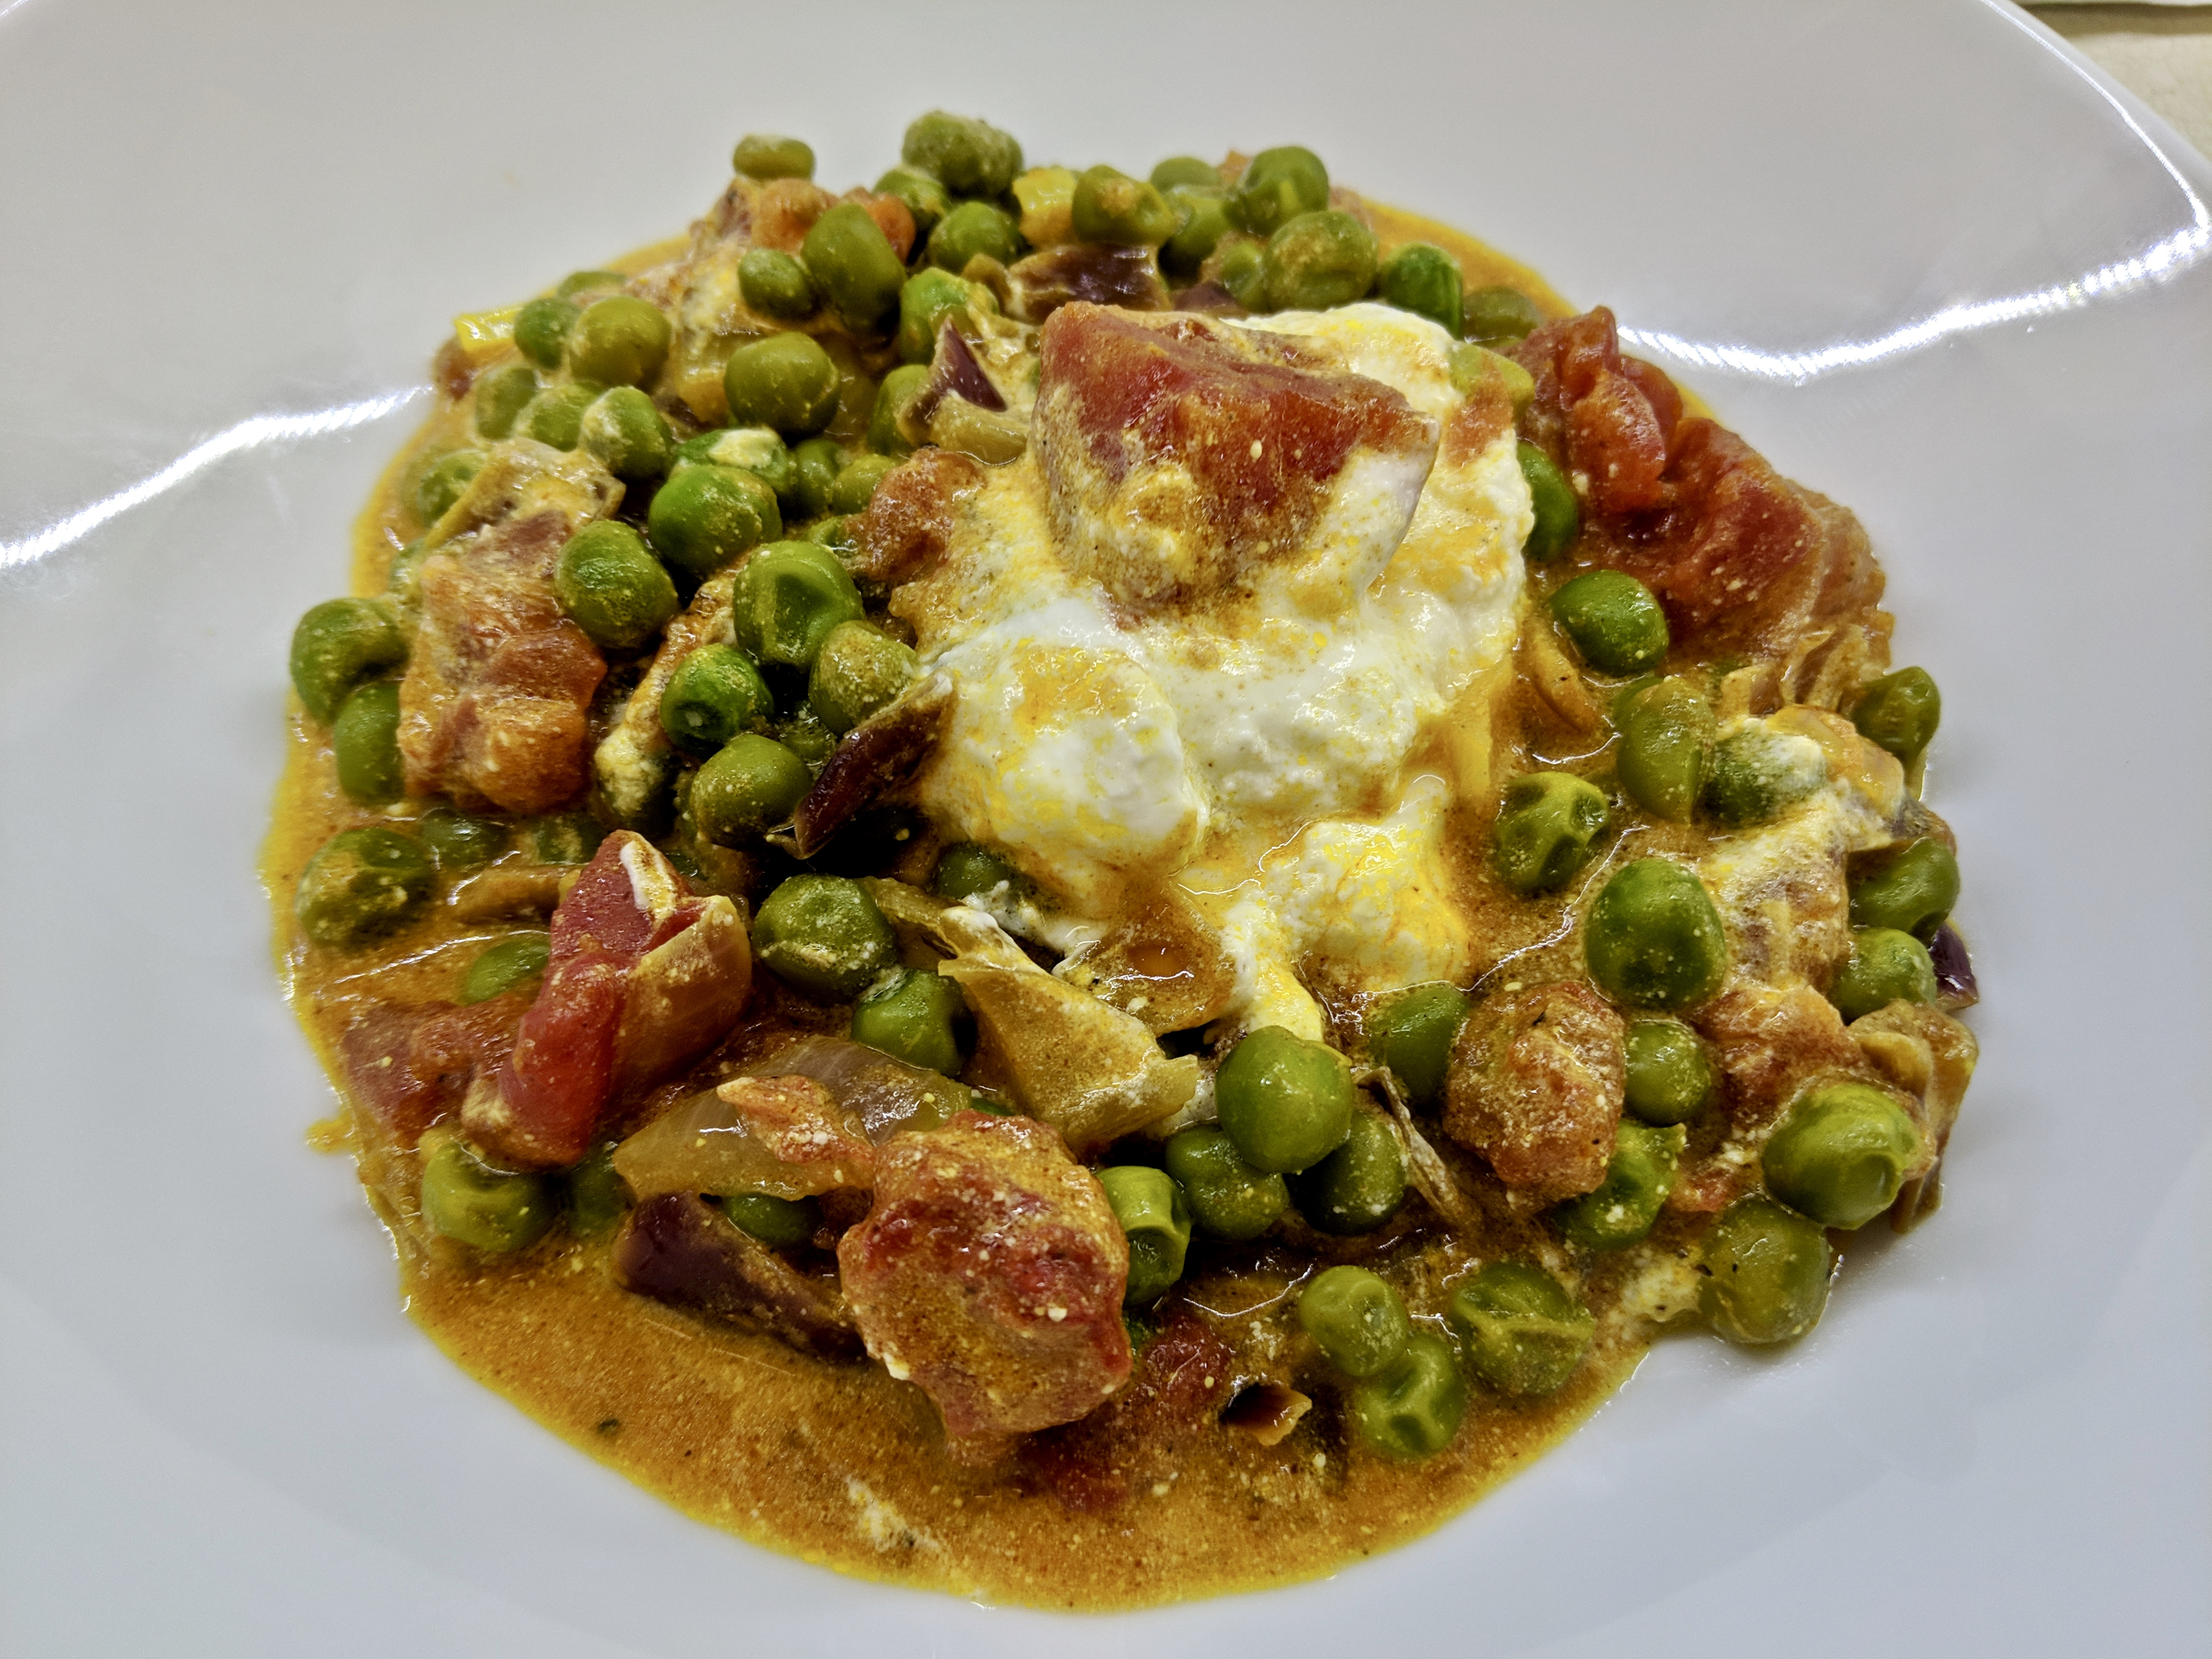 Meal 54 - Mattar Paneer - Peas and Cheese Curry